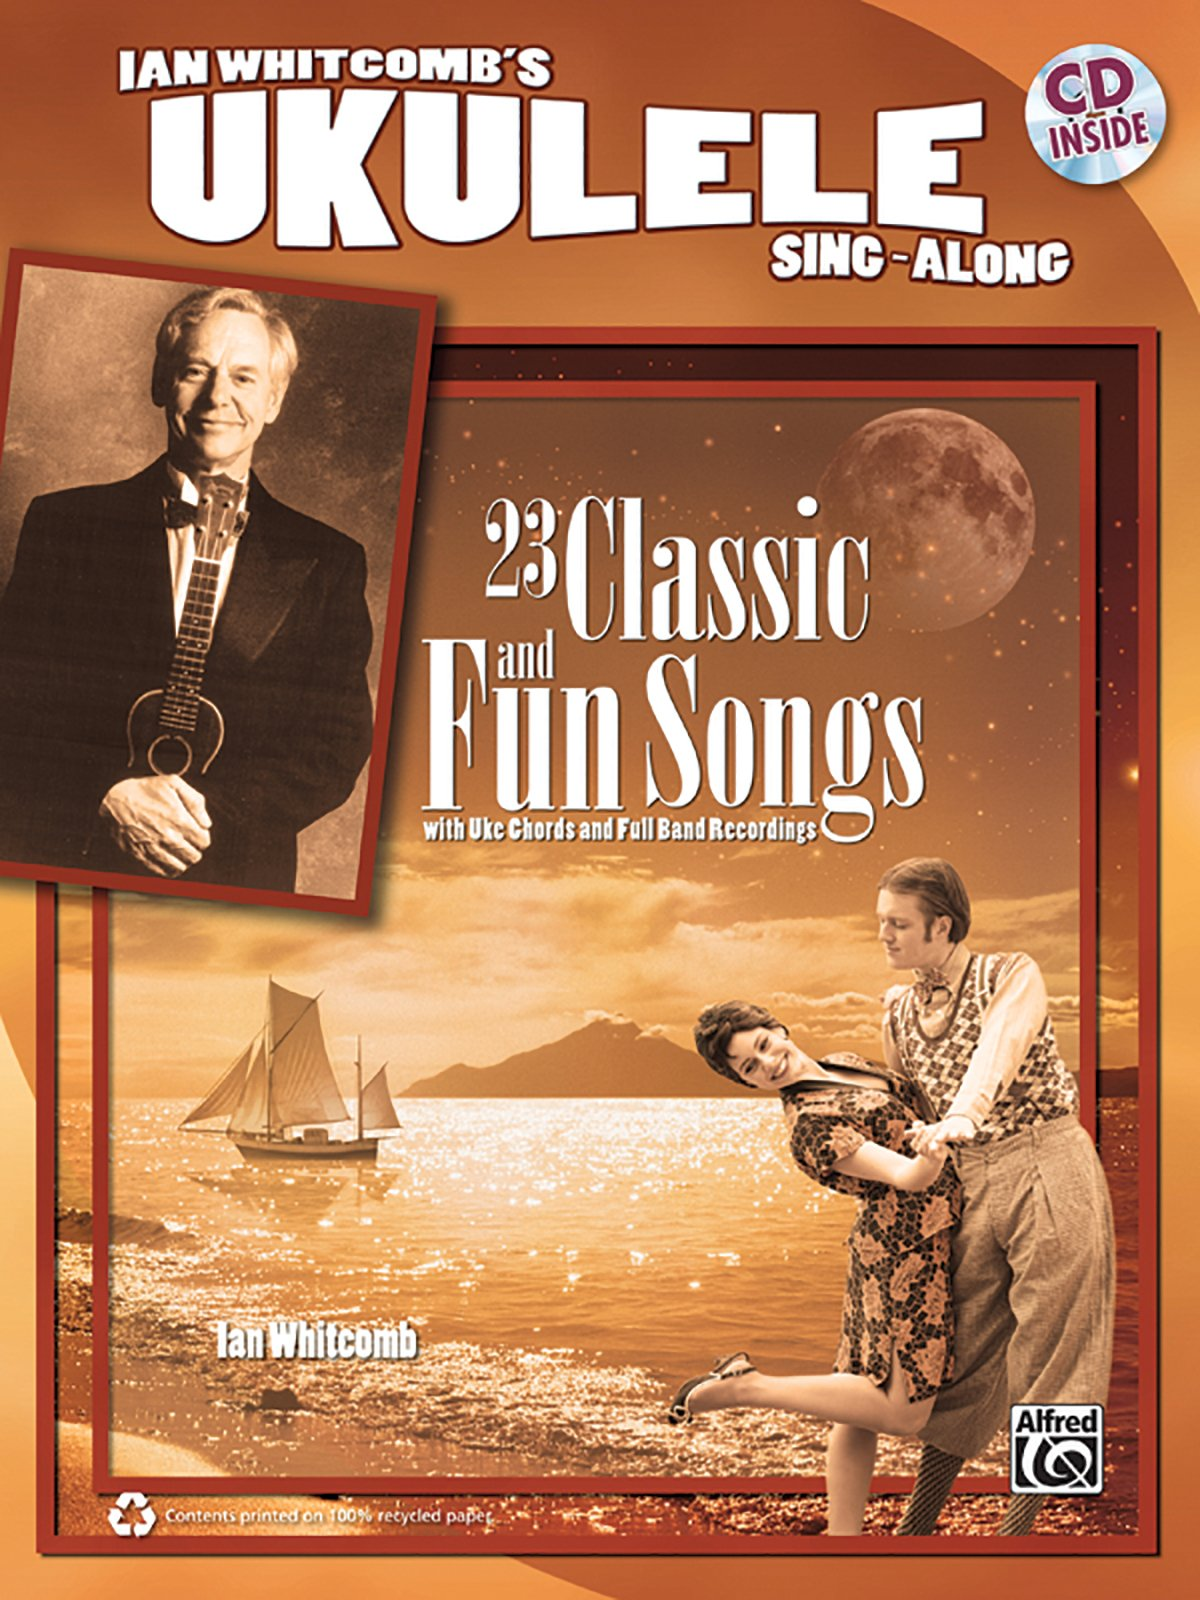 Ian Whitcomb's Ukulele Sing-Along: Book & CD